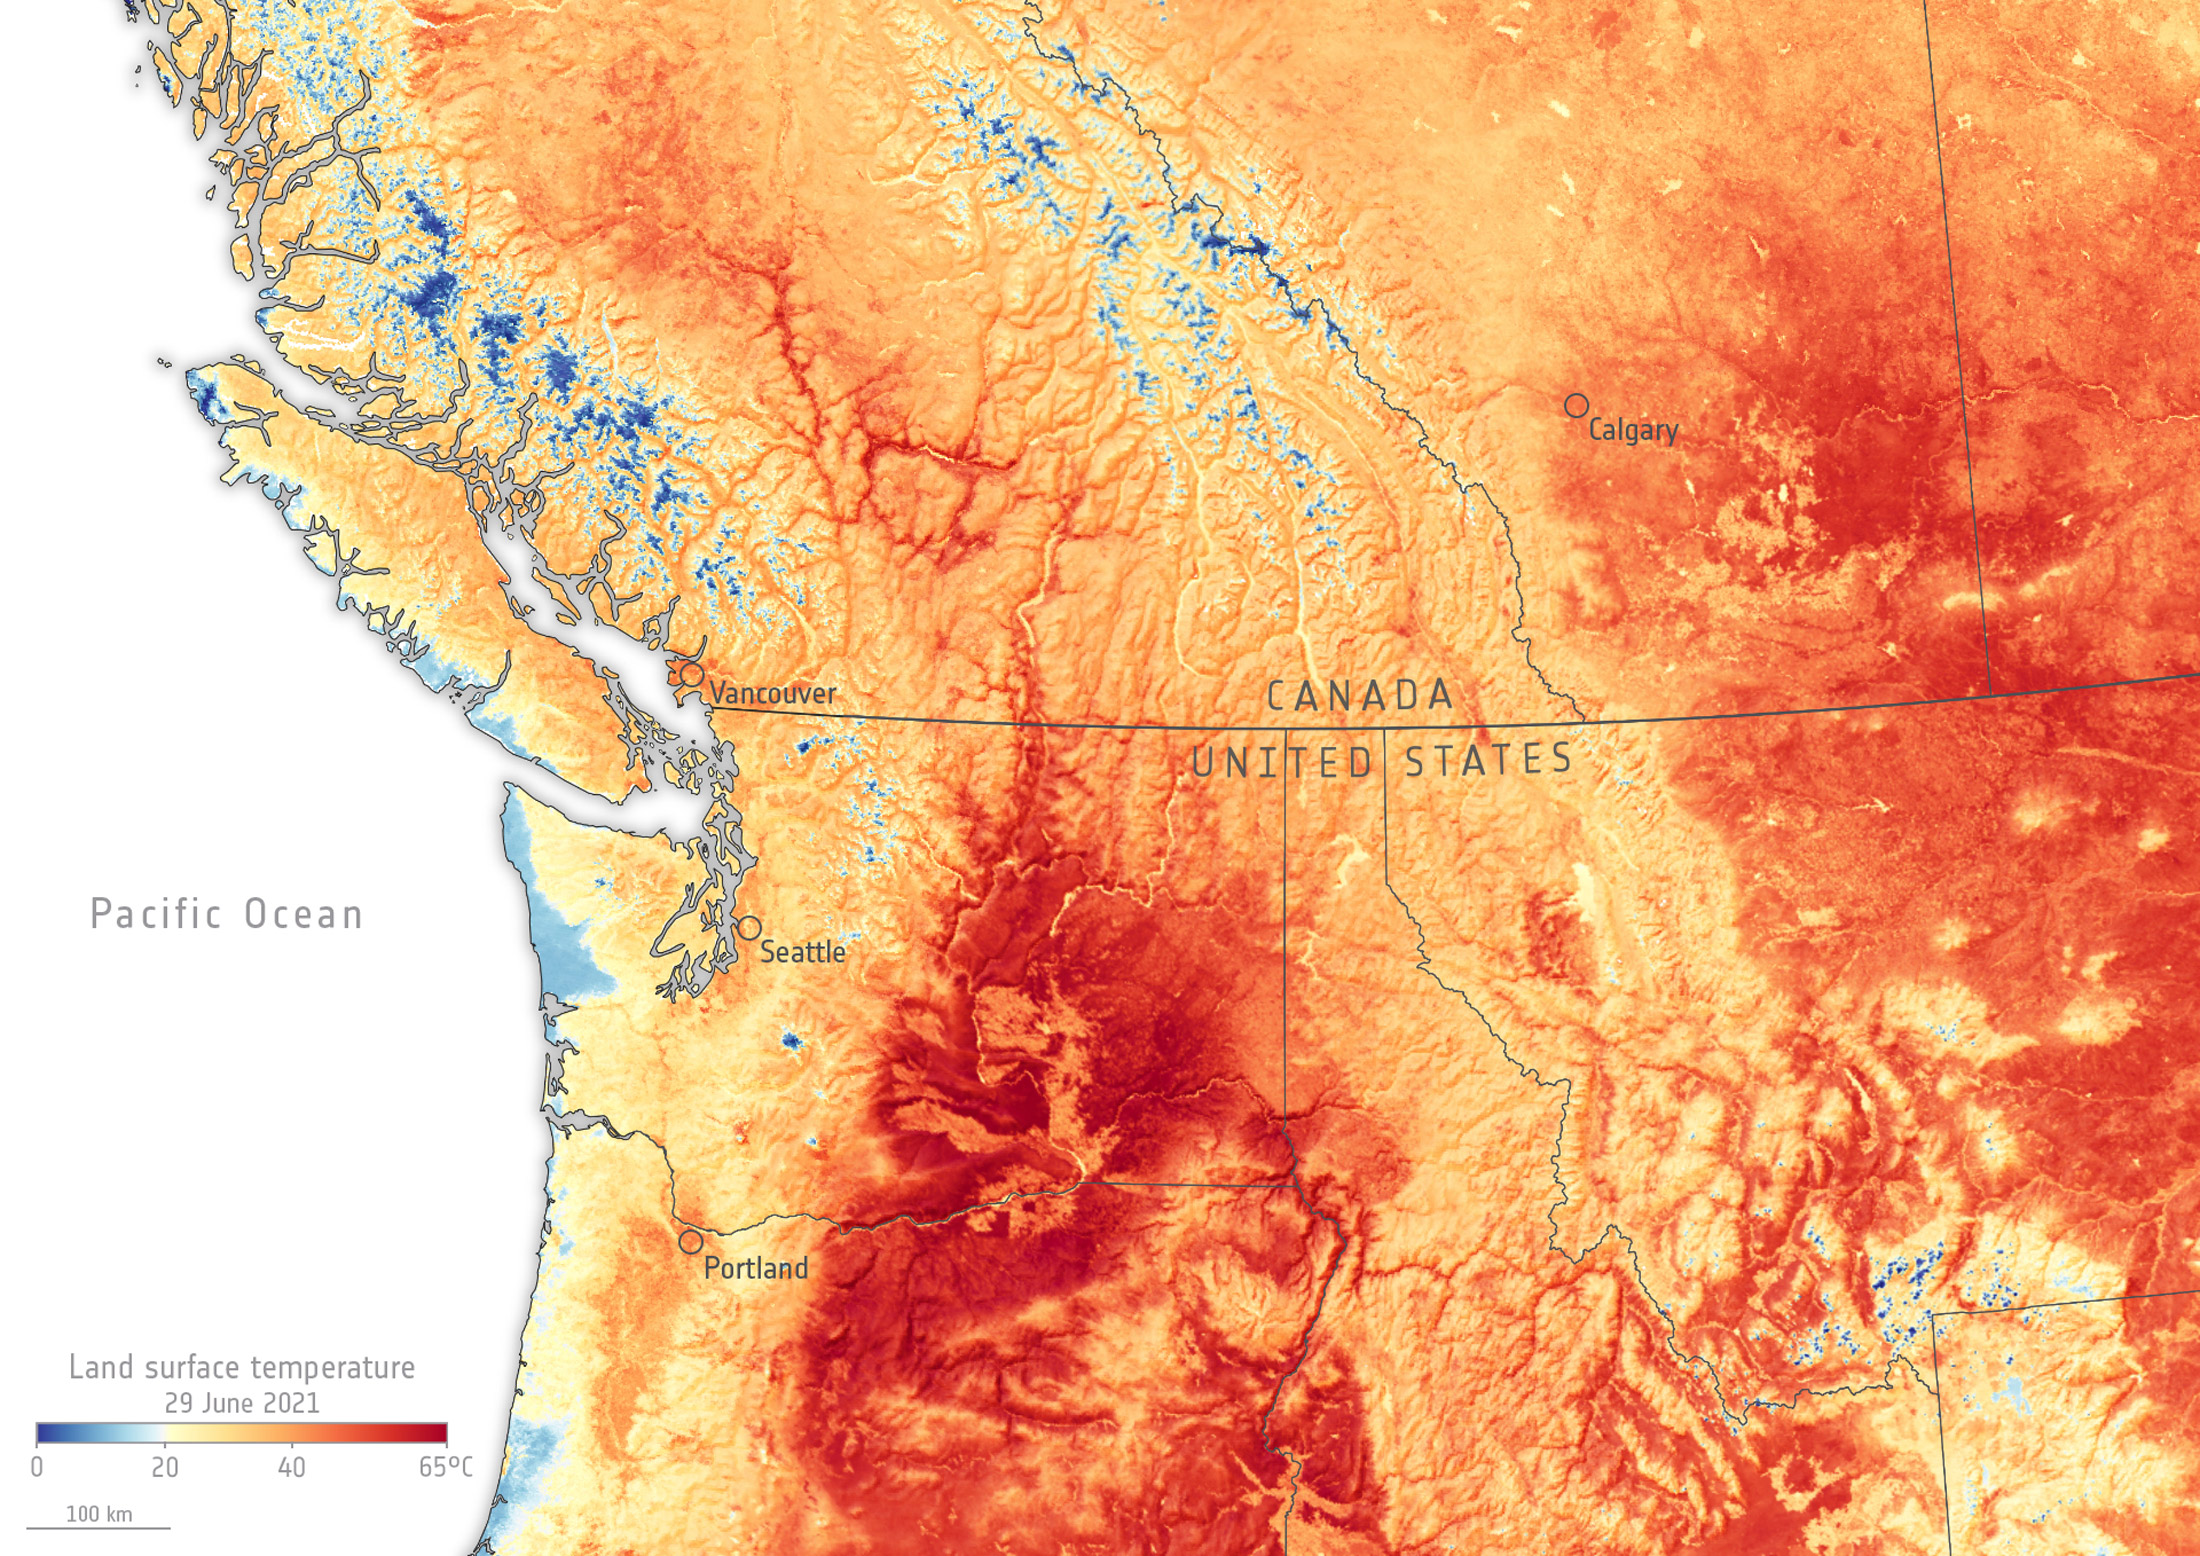 The recent heat wavein the Northwest demonstratesa crucial fact about climate change: It won'tbe a smooth, predictable event.